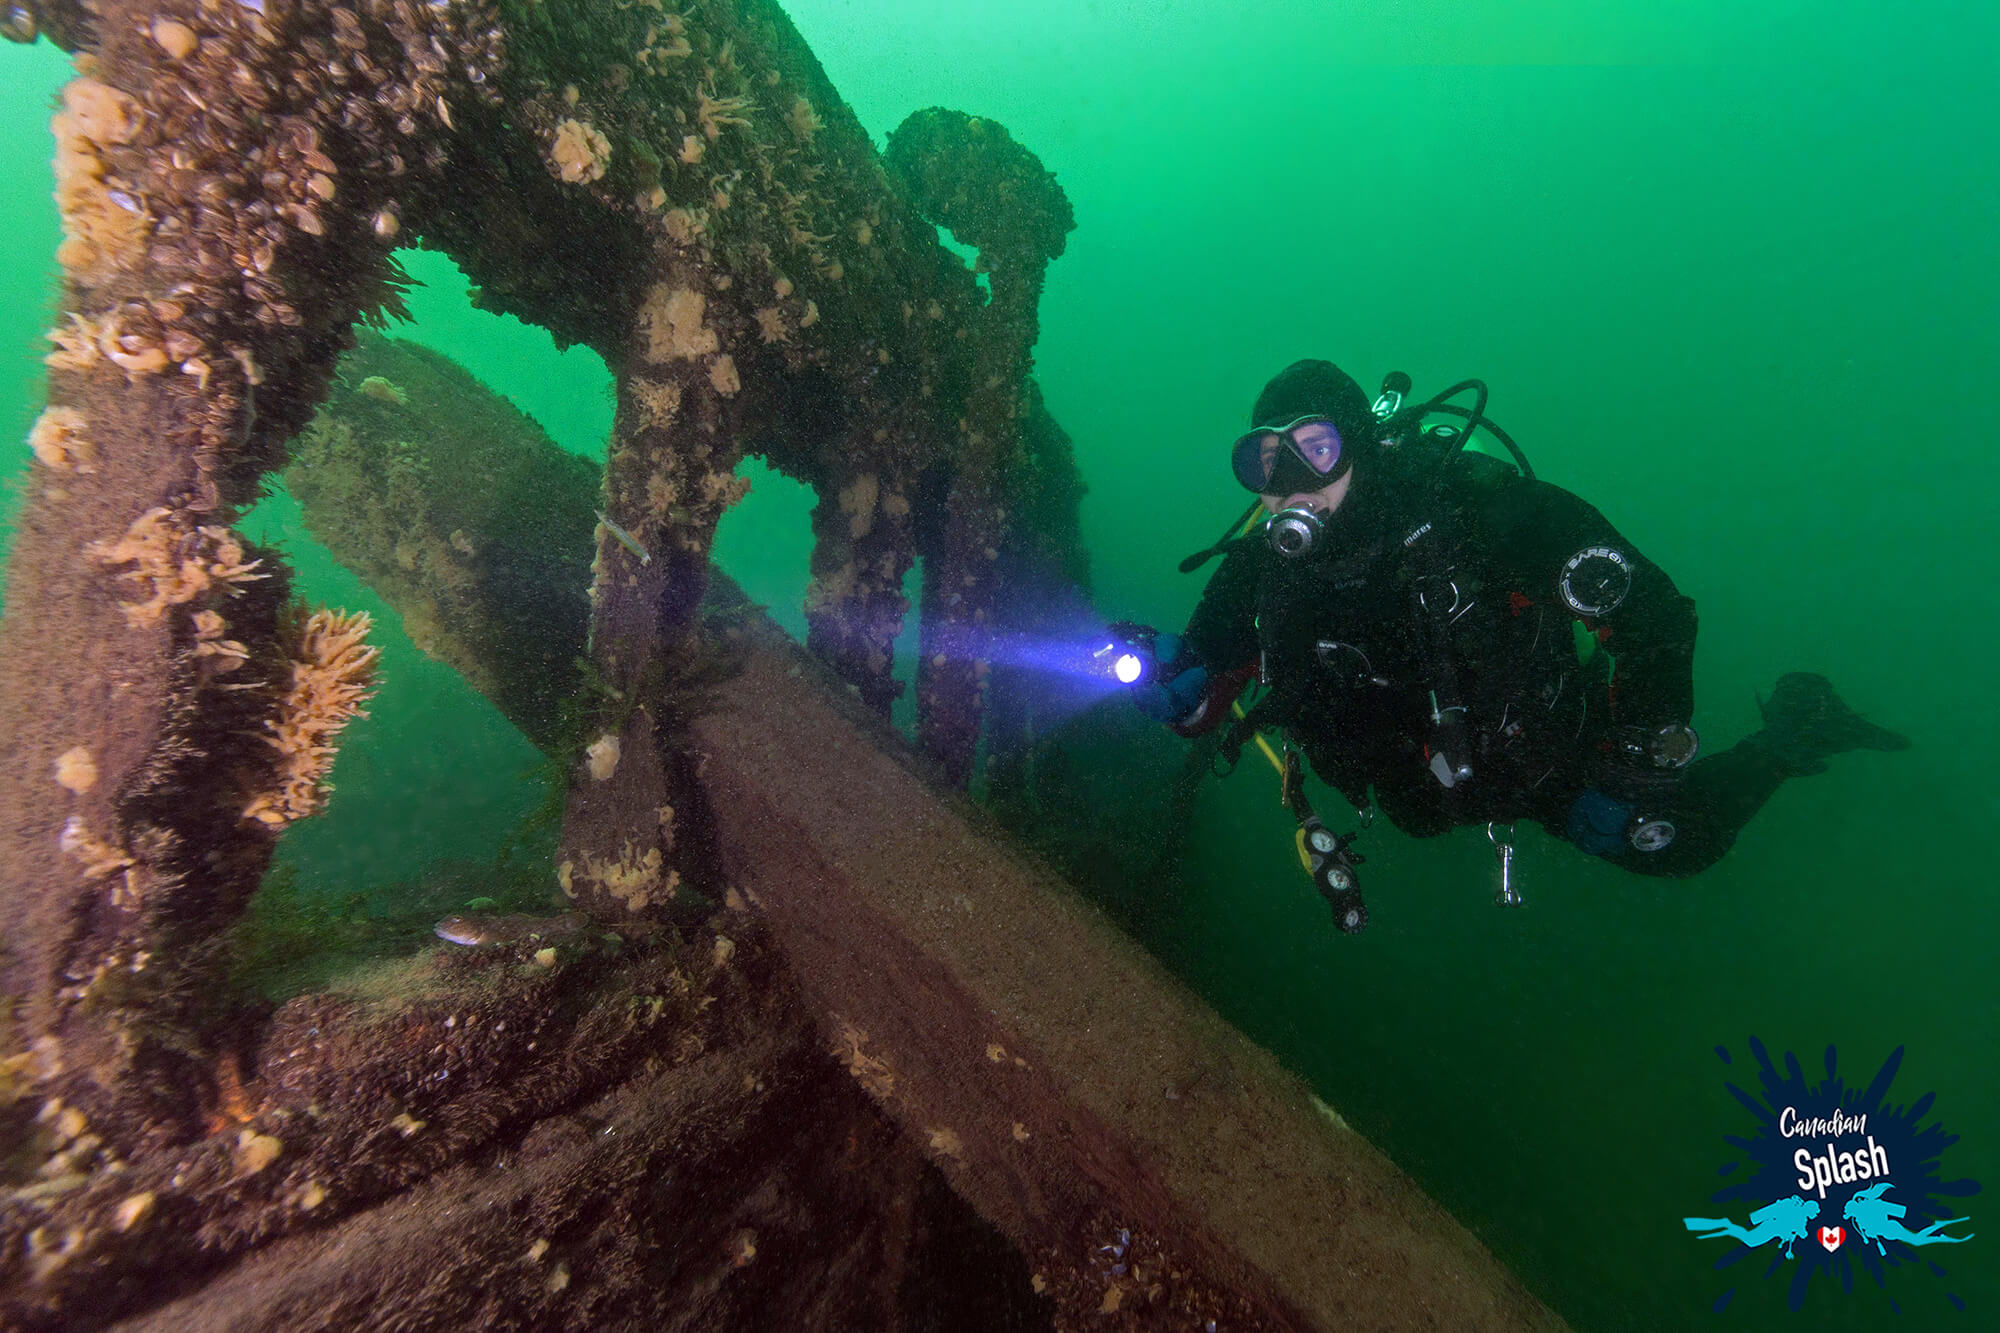 Joey In His Scuba Diving Gear Taking A Look At The Robert Gaskin Shipwreck In Brockville, Ontario